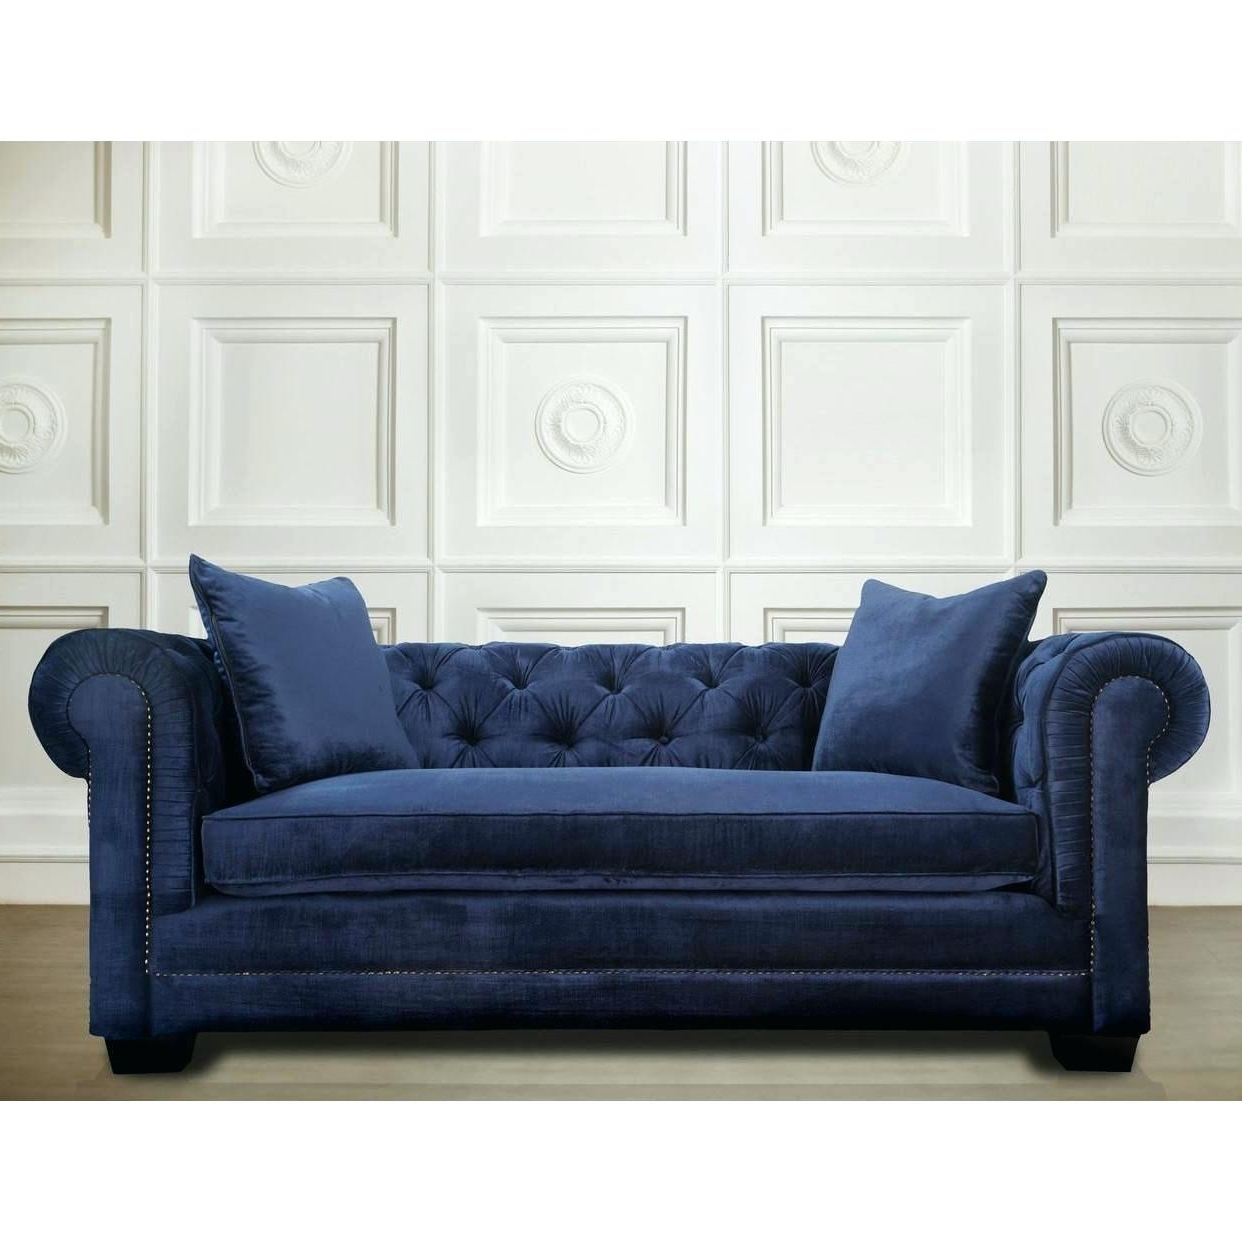 Navy Blue Sofas Sofa Decorating Ideas Couch Set And Chairs Within Newest Blue Sofa Chairs (View 19 of 20)